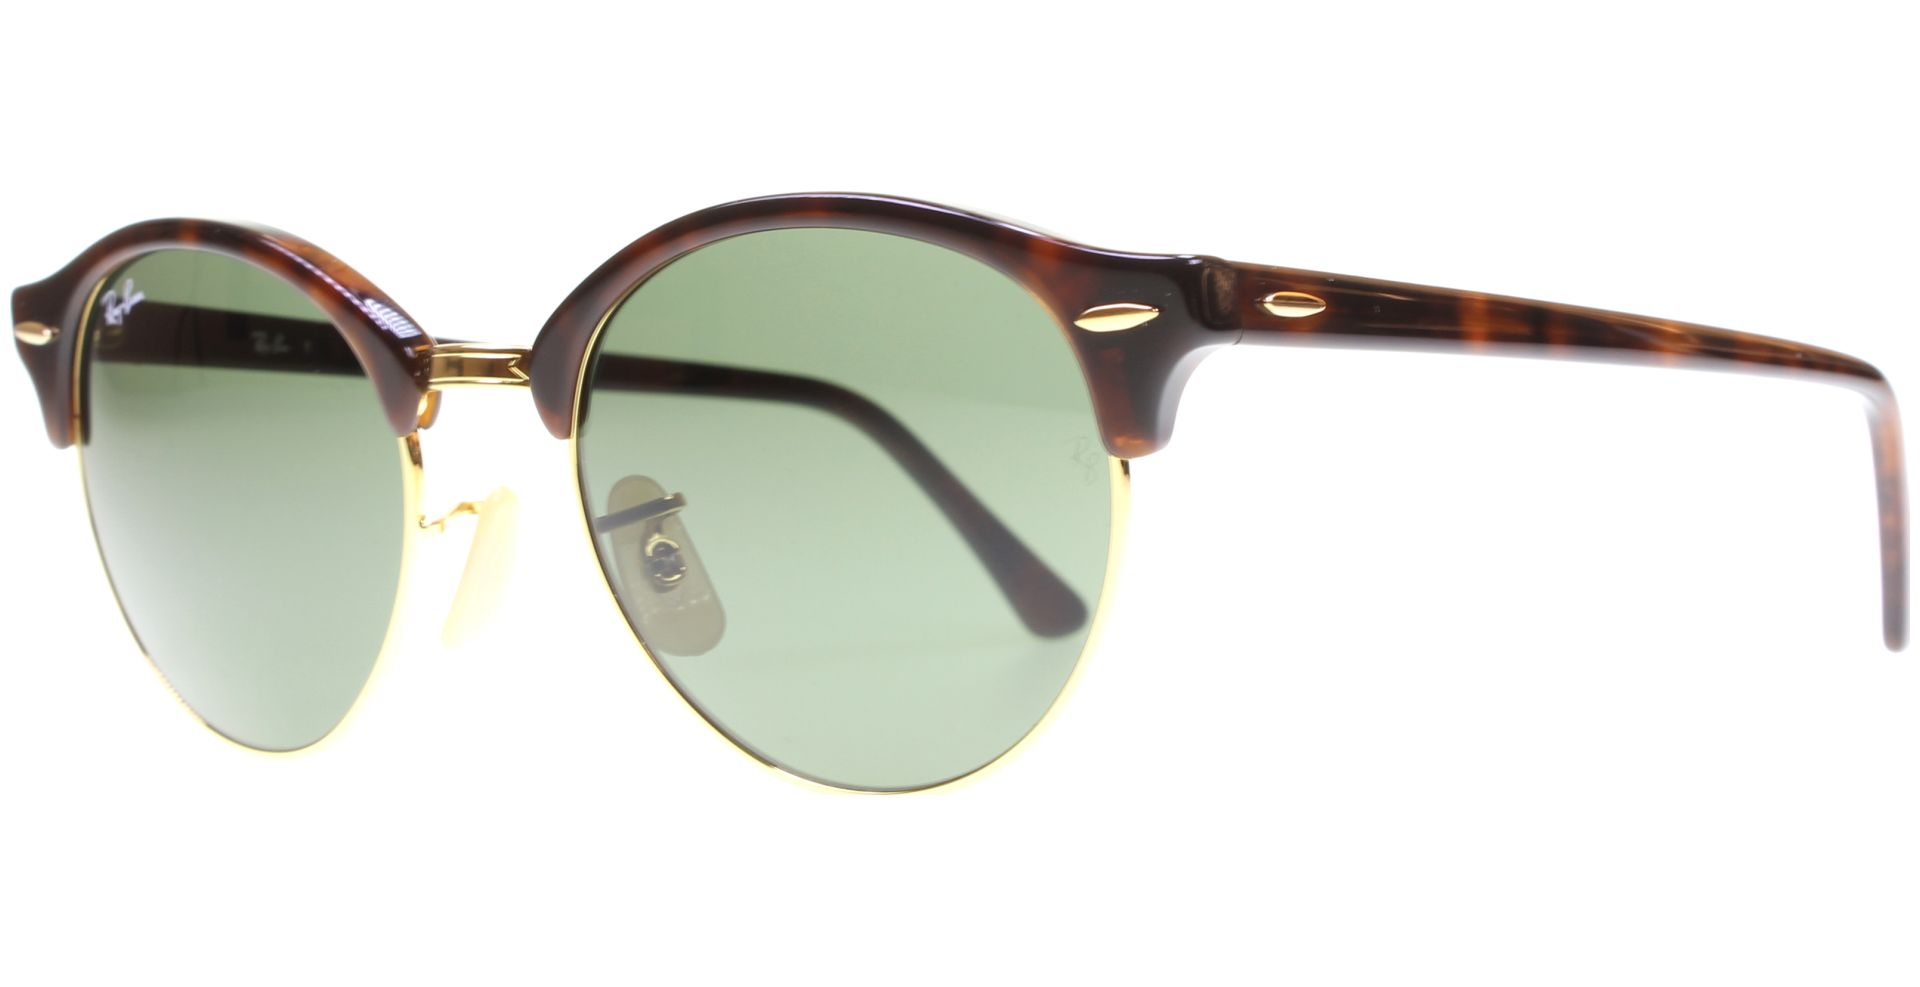 Ray Ban Clubround RB4246 990 51 19 Ray Ban Korrektions Sonnenbrillen